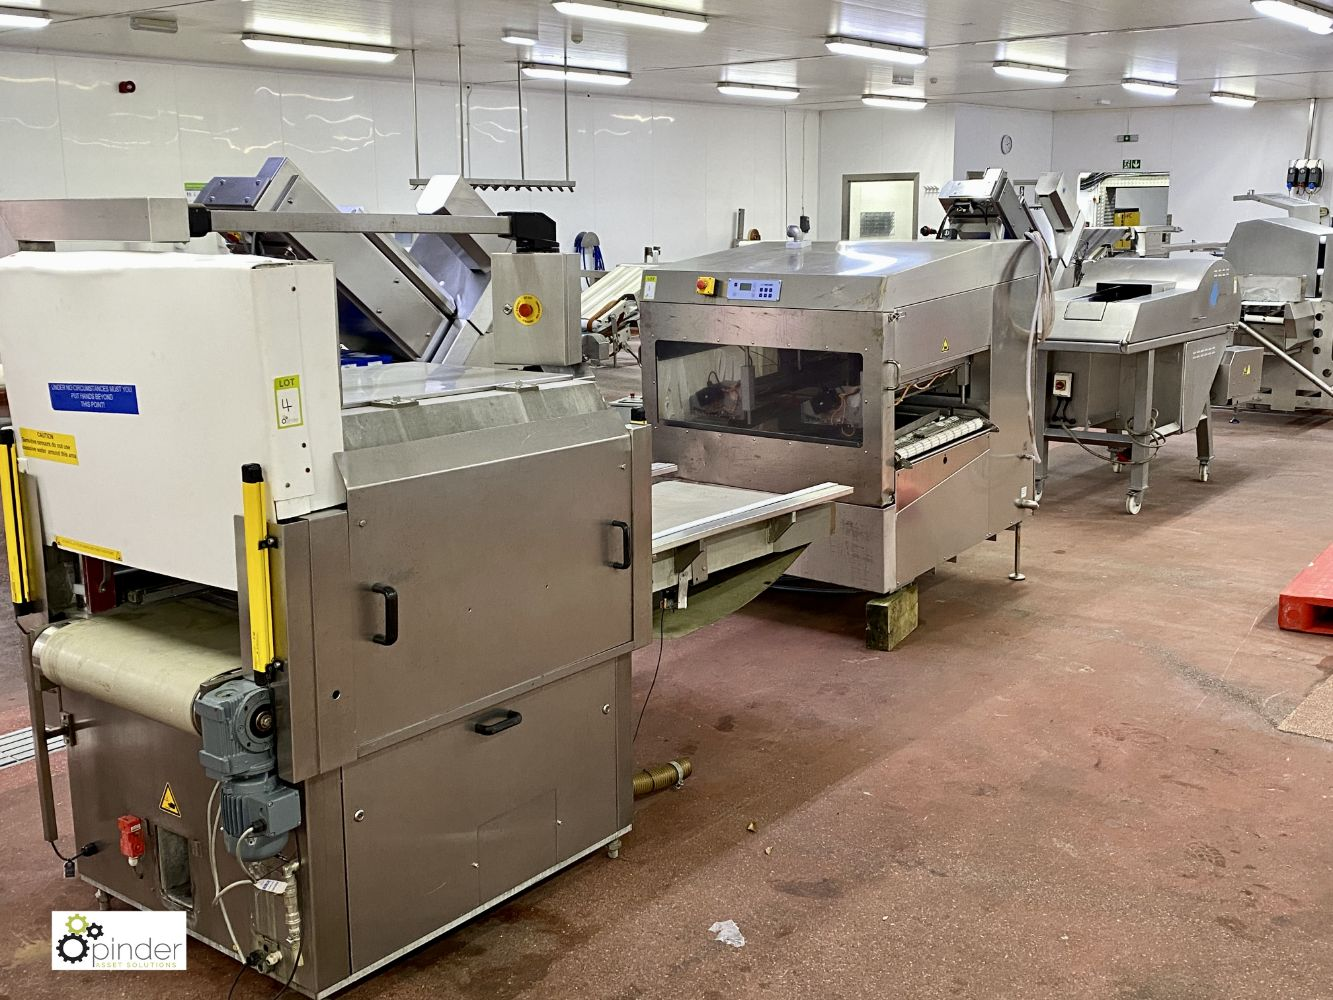 Quality Meat Processing and Packaging Machinery, Chillers and Kaeser Compressors